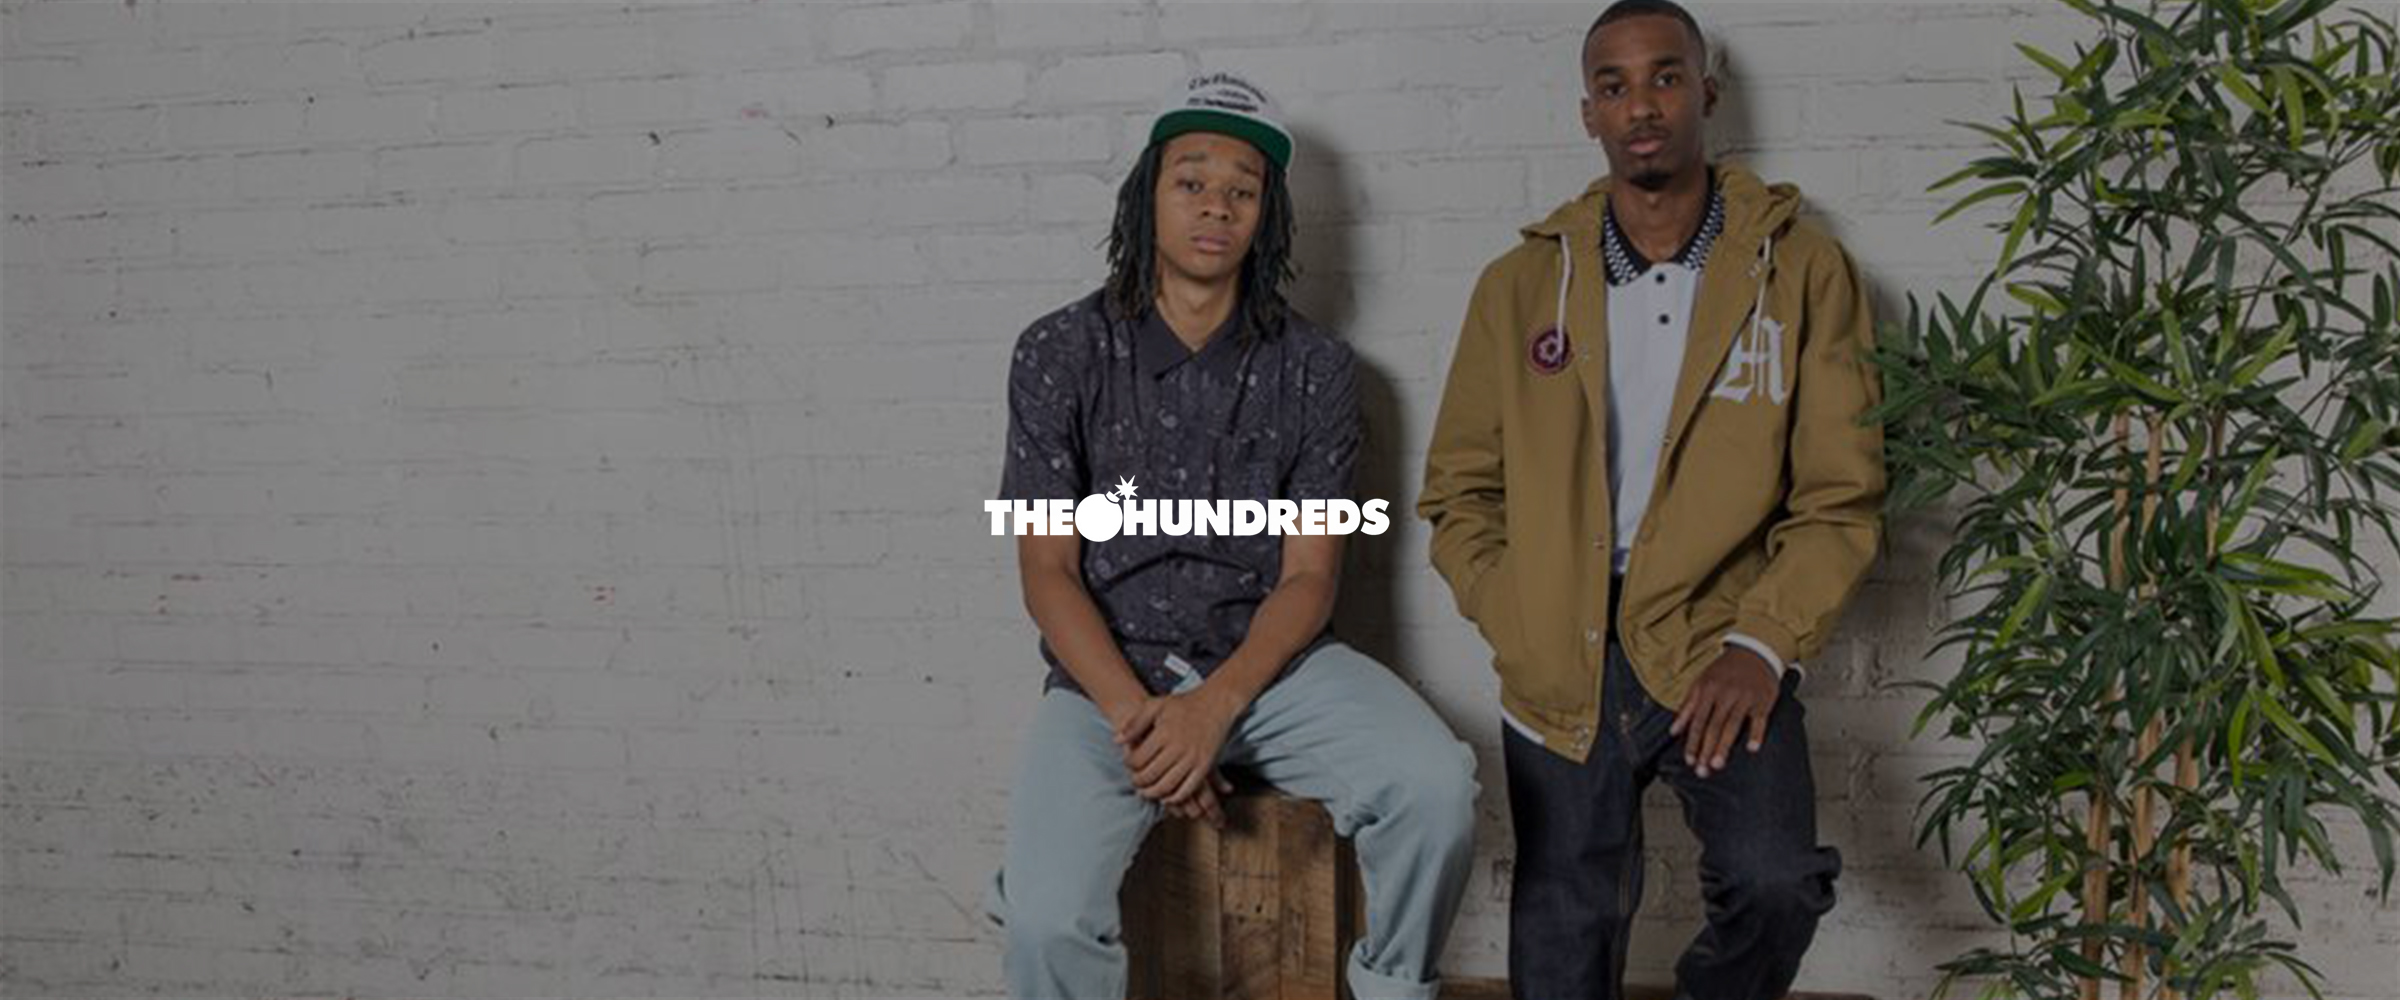 the hundreds.jpg